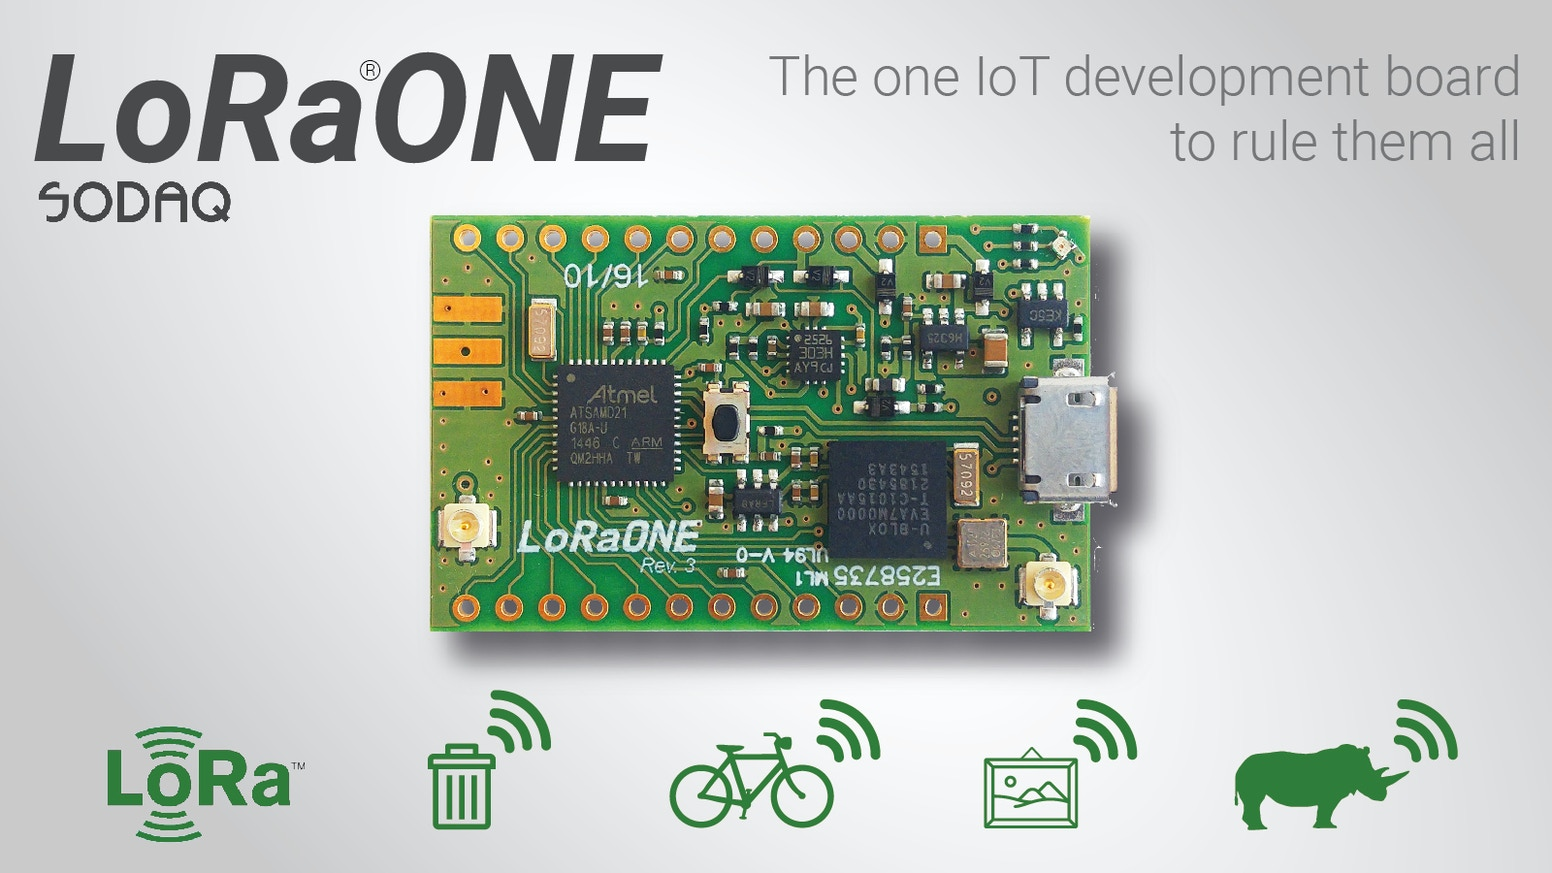 SODAQ ONE is the one IoT development board to rule them all. Make anything you can think of, with this tiny Arduino compatible board.